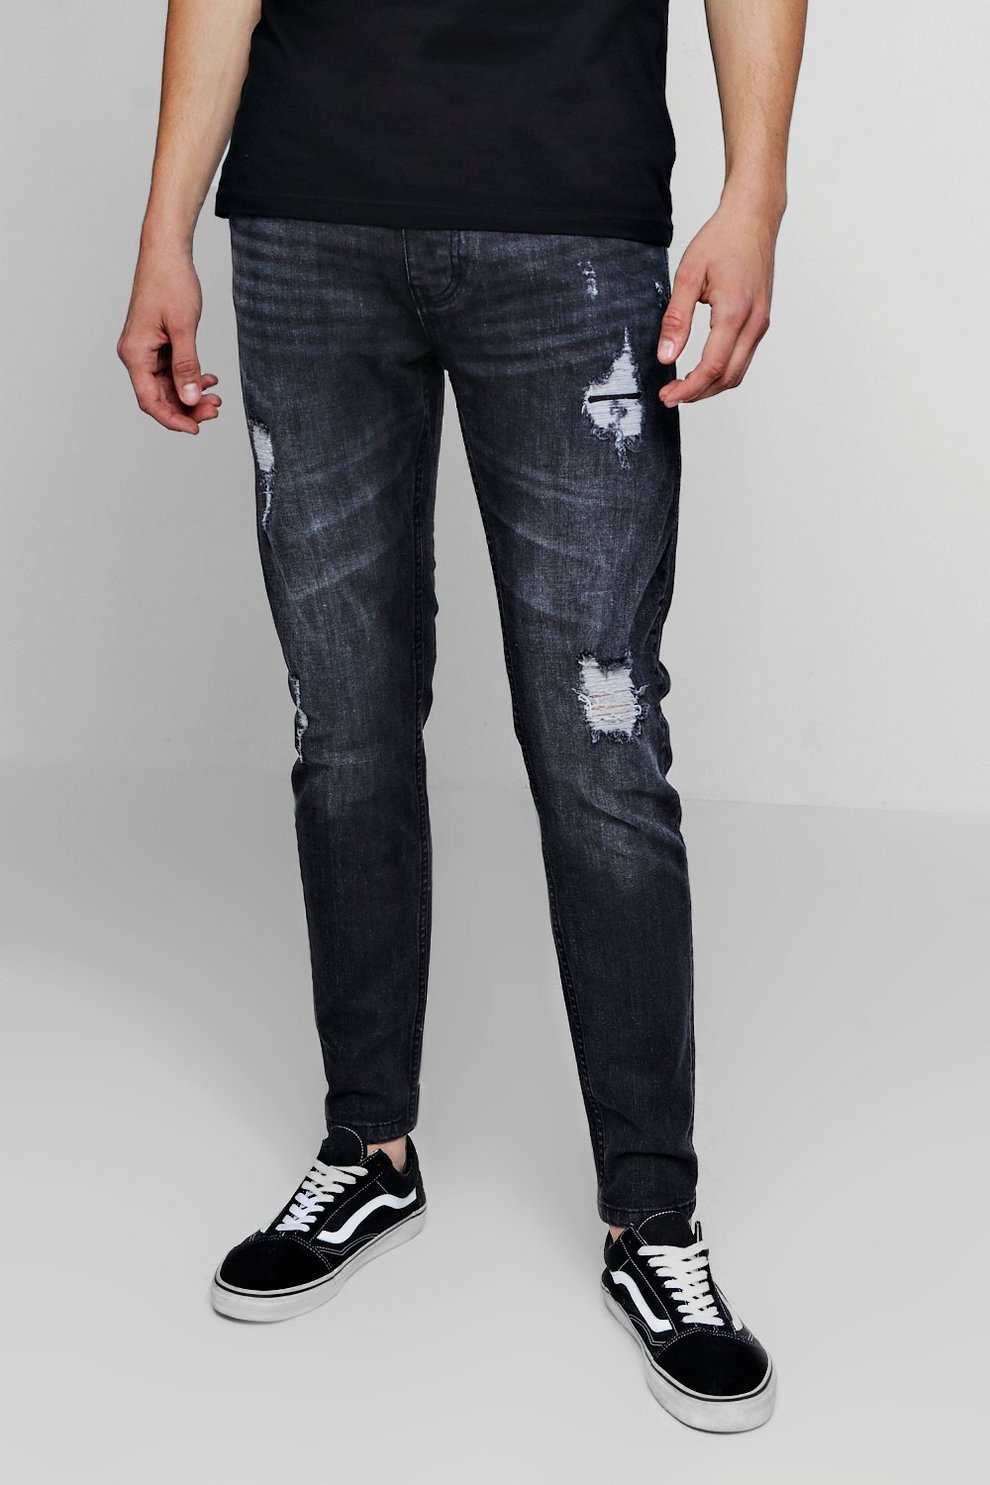 bd135e23dff3 Mens Charcoal Skinny Fit Jeans With Rip And Repair Detail